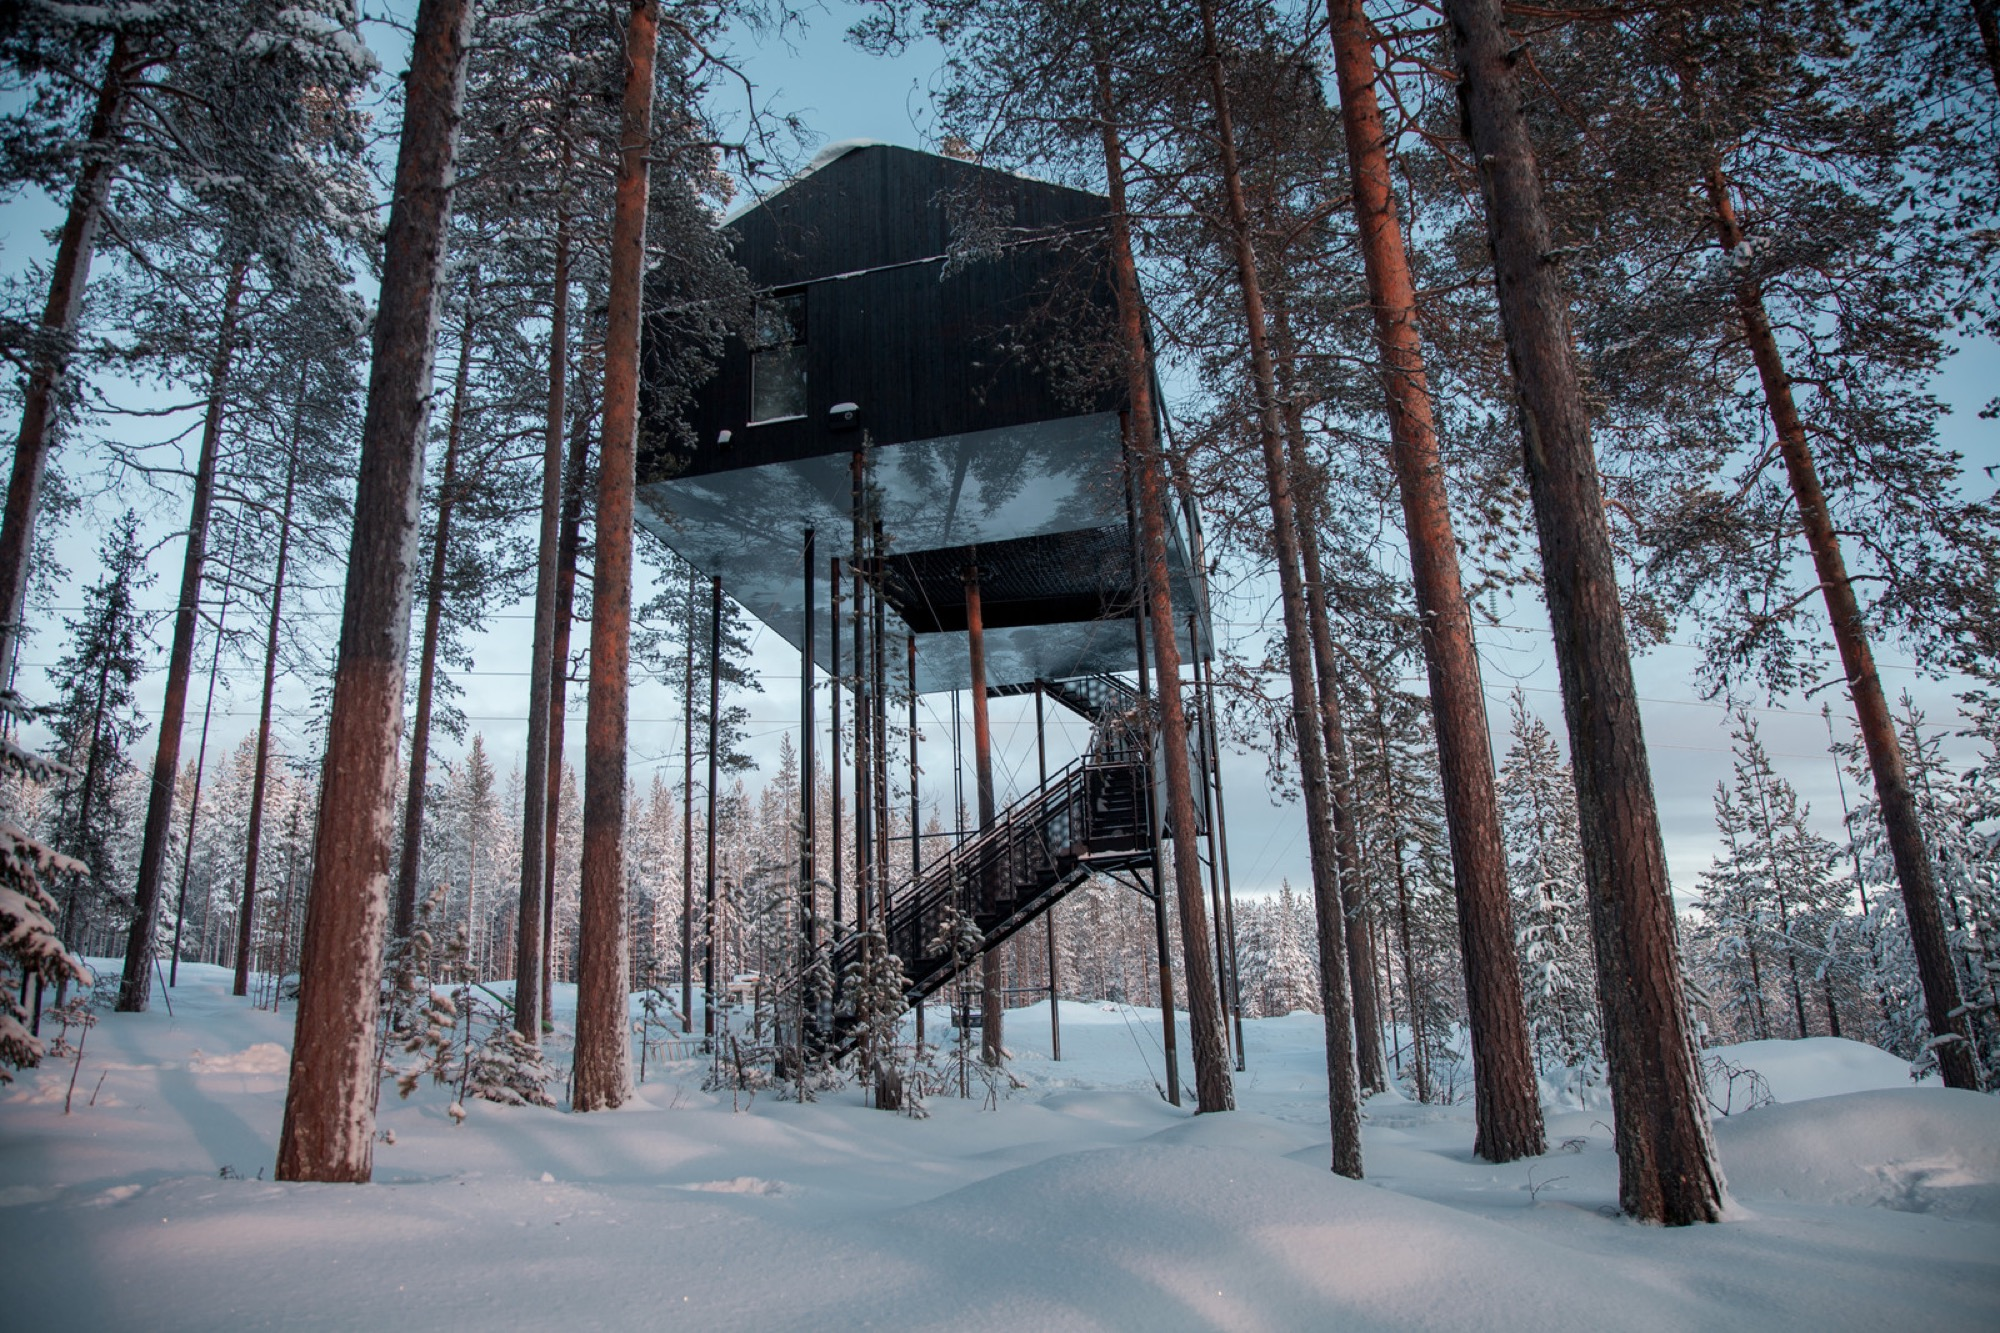 Treehotel's 7th room in Sweden / Photo by Johan Jansson